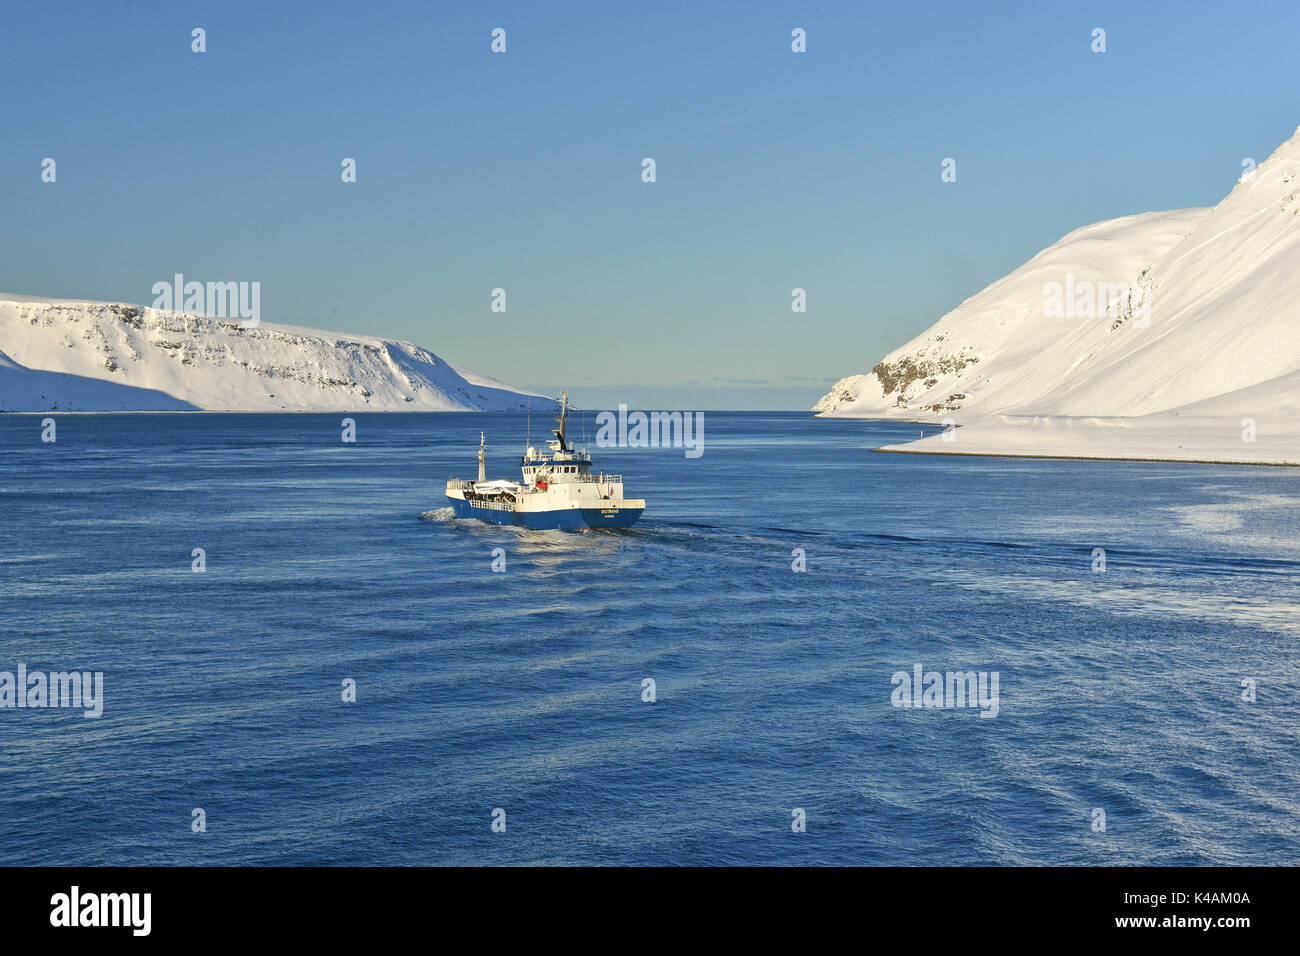 Blue-and-white ship, Meerenge, Magerøysund, Finnmark, Norway Stock Photo